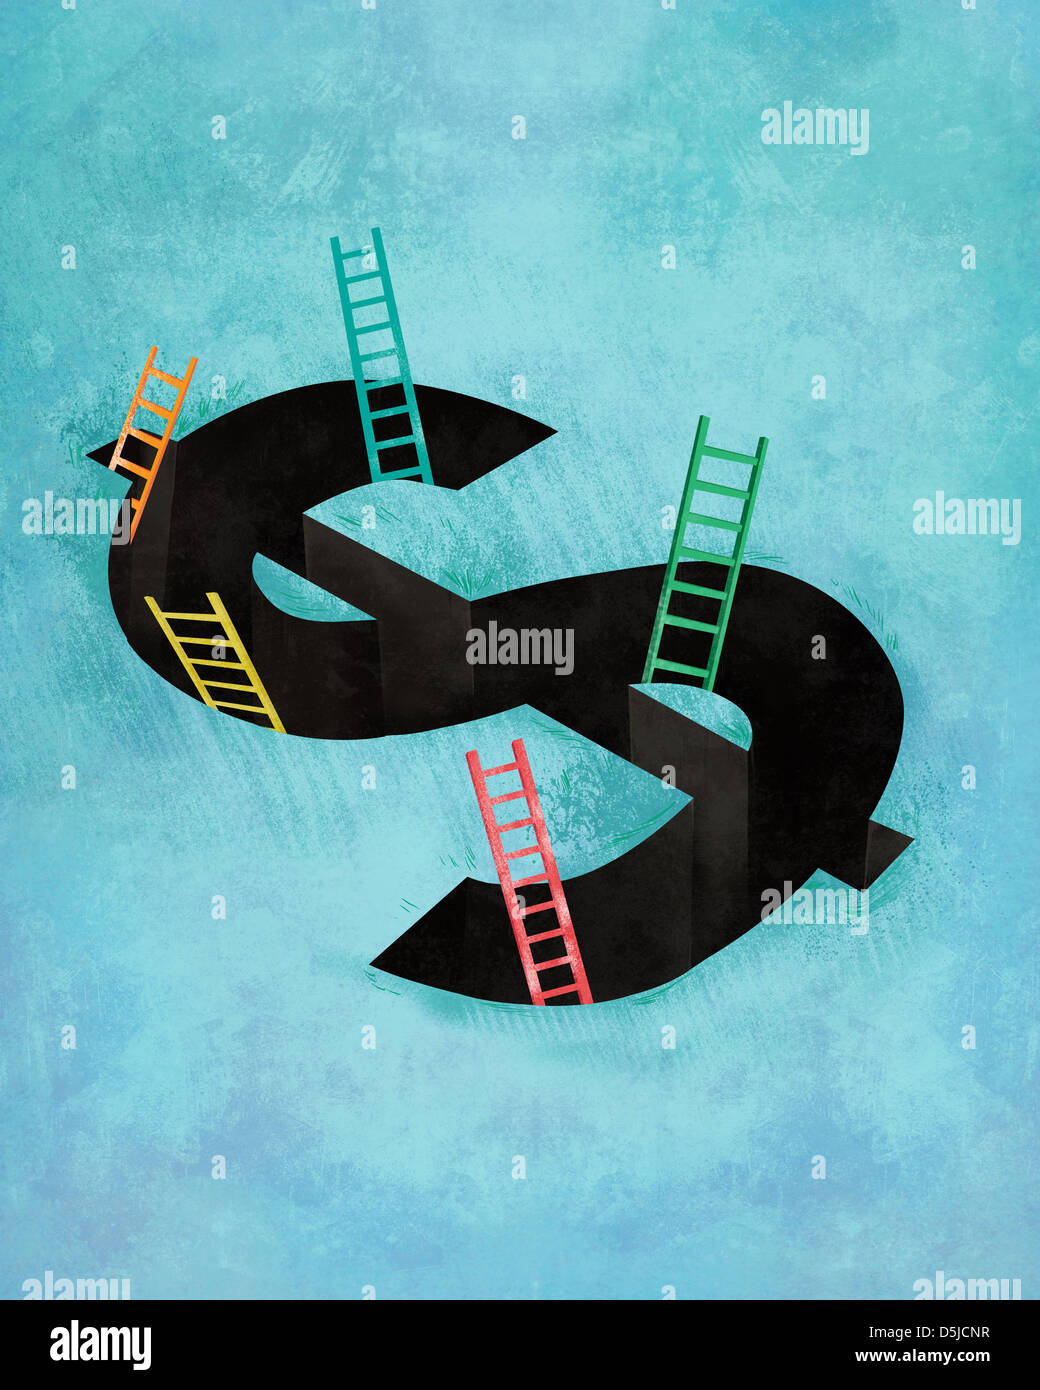 Illustrative image of dollar sign with ladders representing coming out from debt Stock Photo